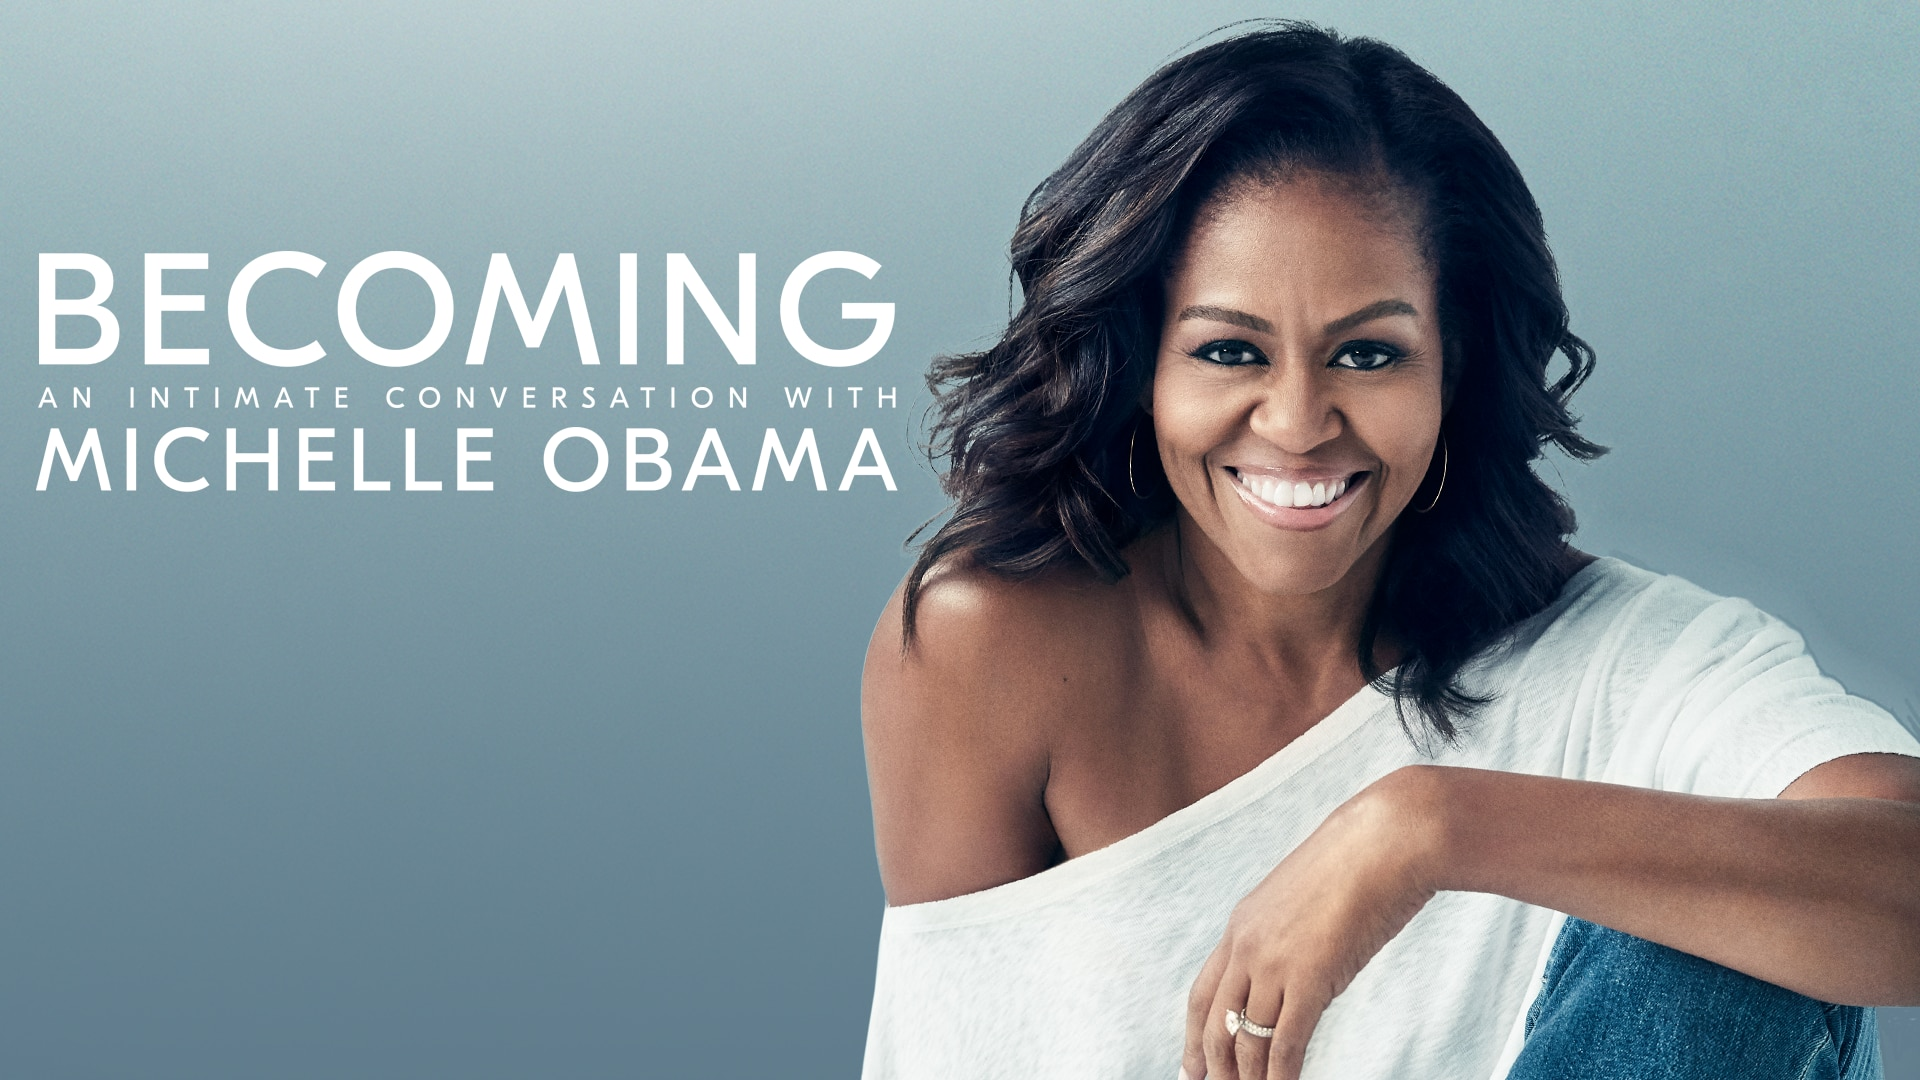 1920x1080 - Michelle Obama Wallpapers 30